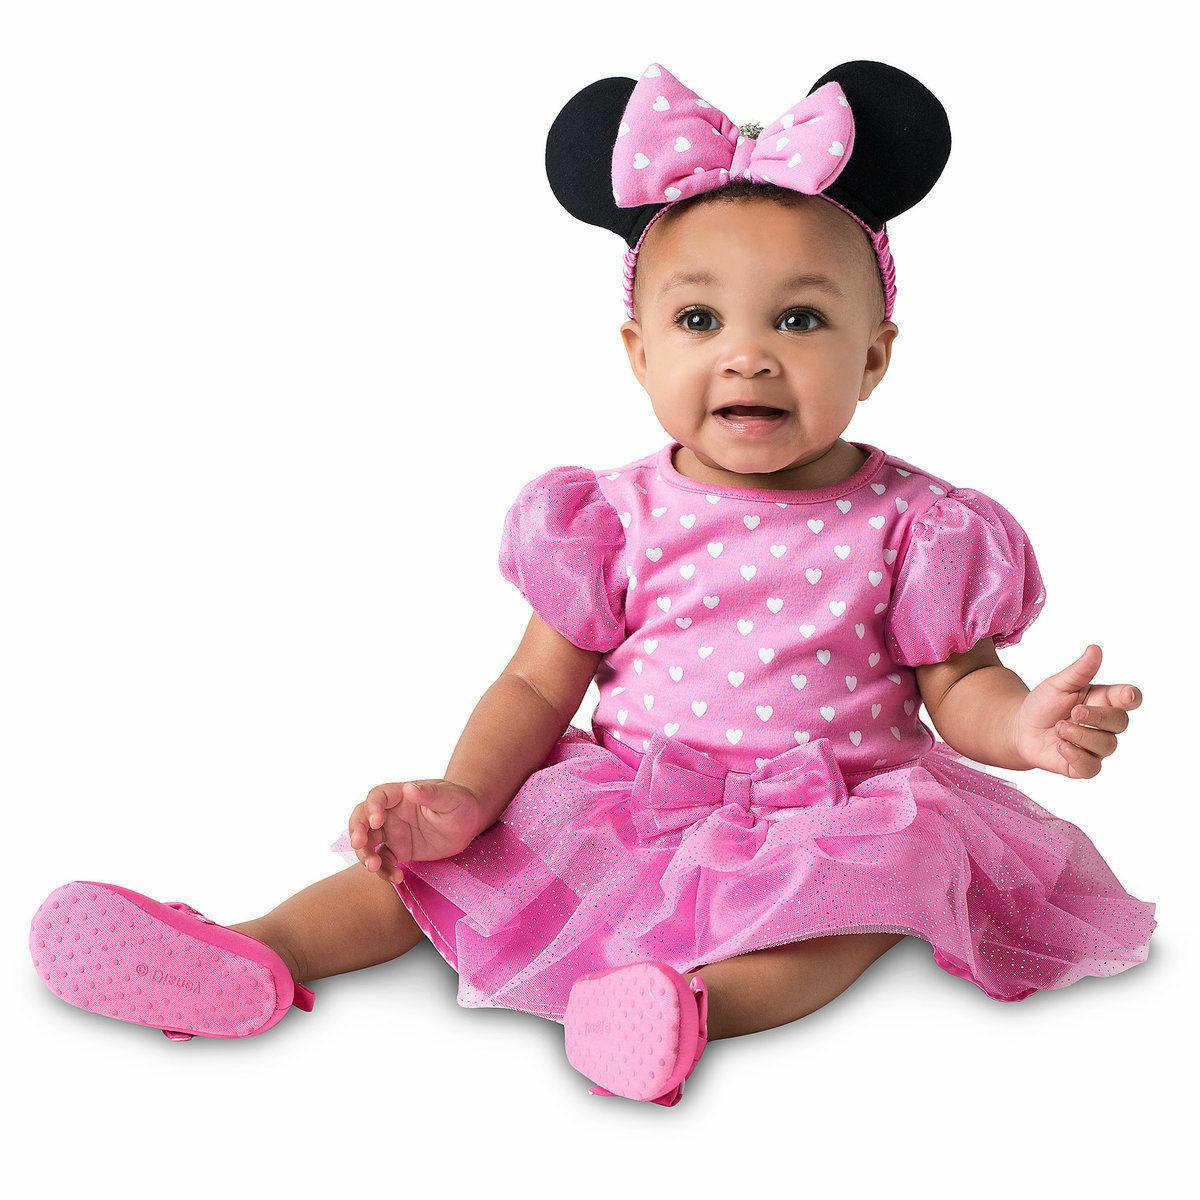 NWT Disney Store 6 9 12 18 24 Mos Minnie Mouse Baby Costume